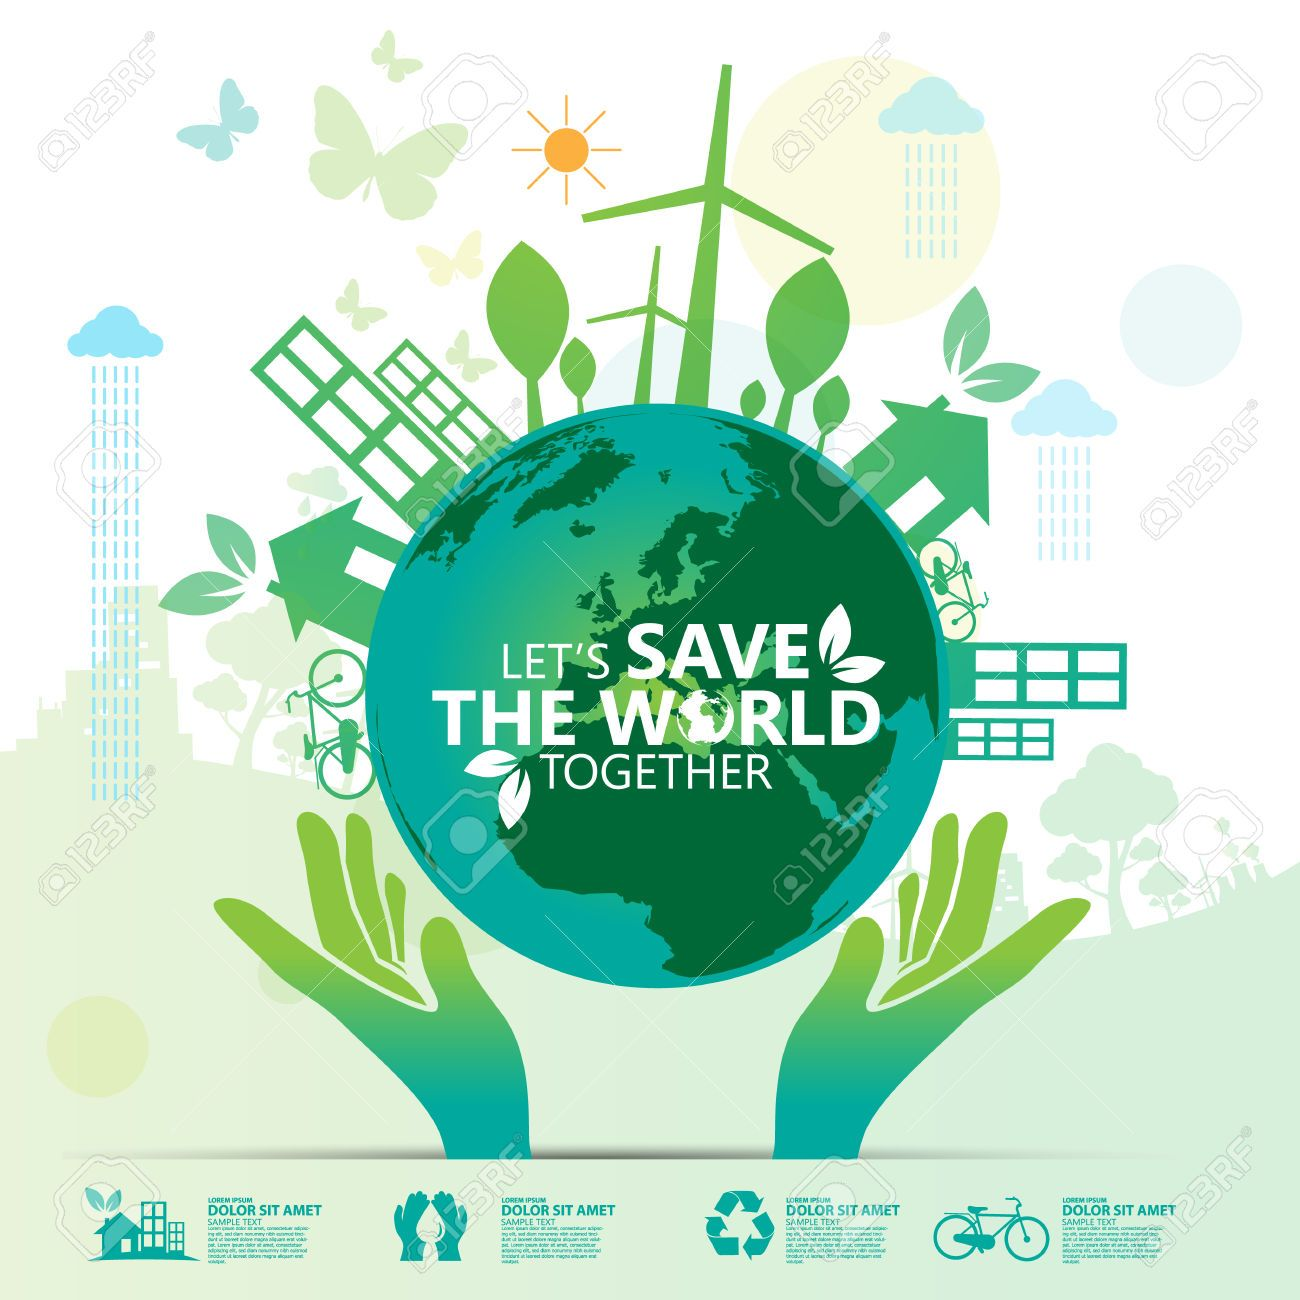 Letu0027s Save The World Together Royalty Free Cliparts, Vectors, And Stock  Illustration. Image 50857406.